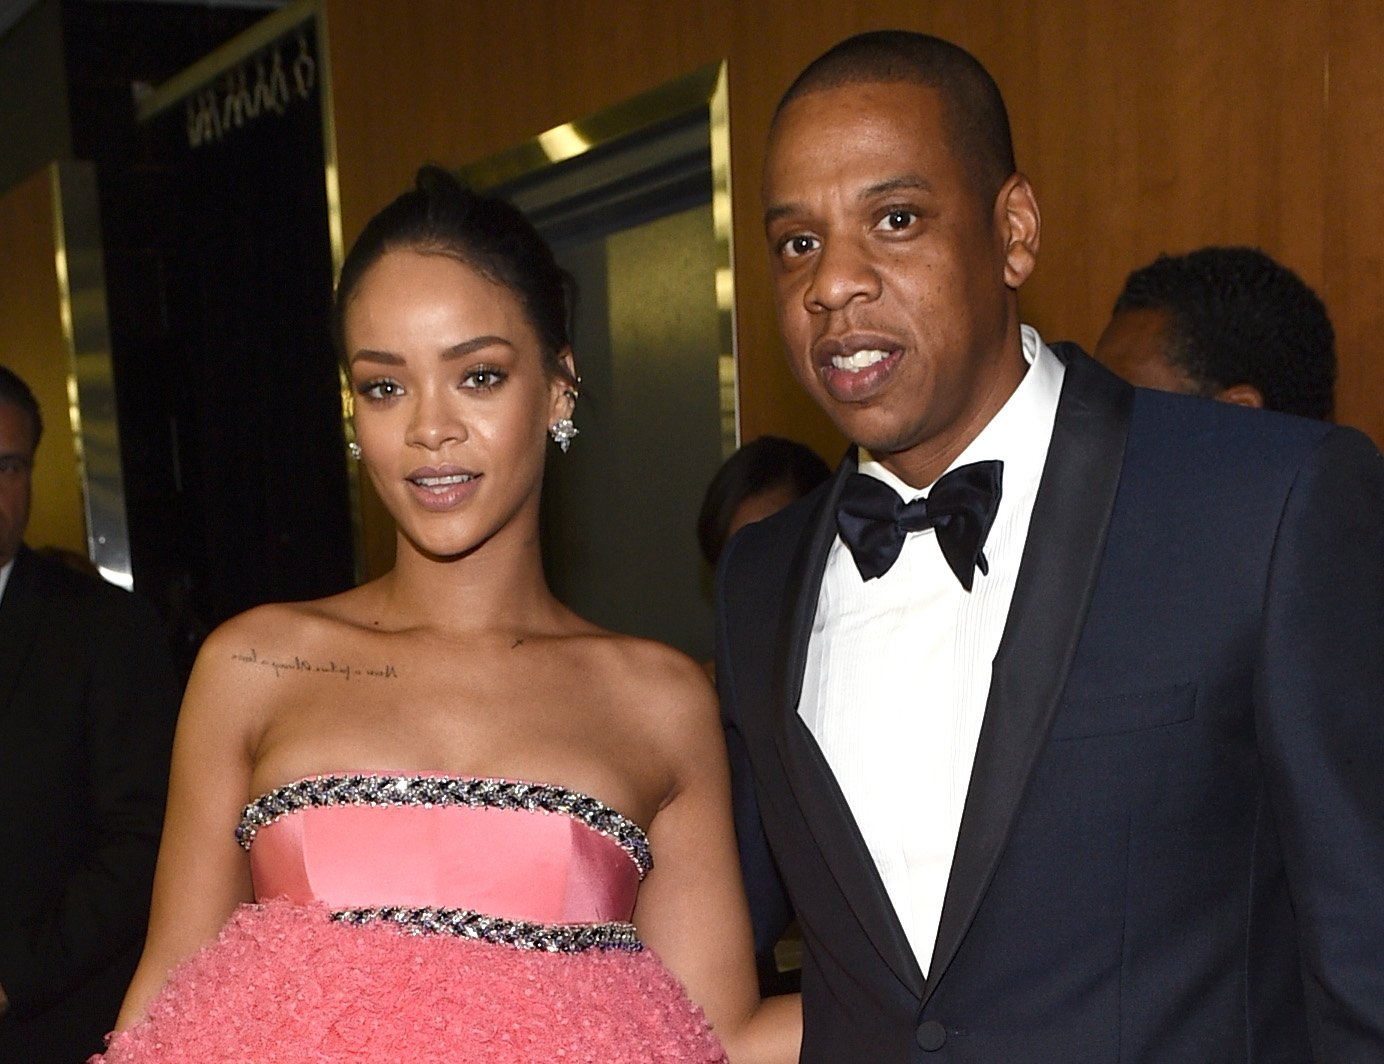 Rihanna and Jay-Z at the 57th Annual Grammy Awards in February 2015. | Photo: Getty Images